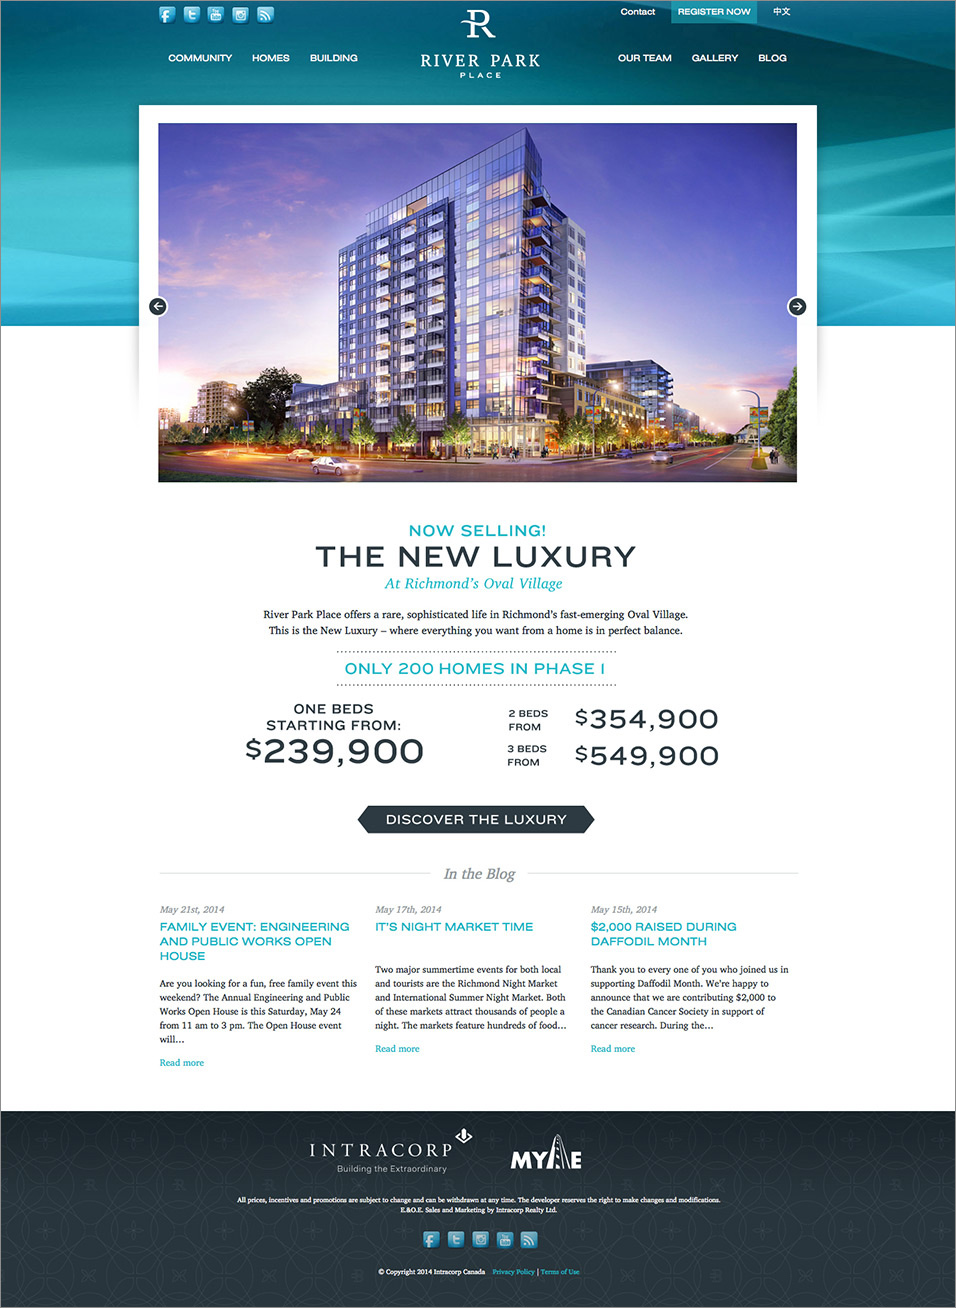 riverparkplace-vancouver-design-branding-website.jpg